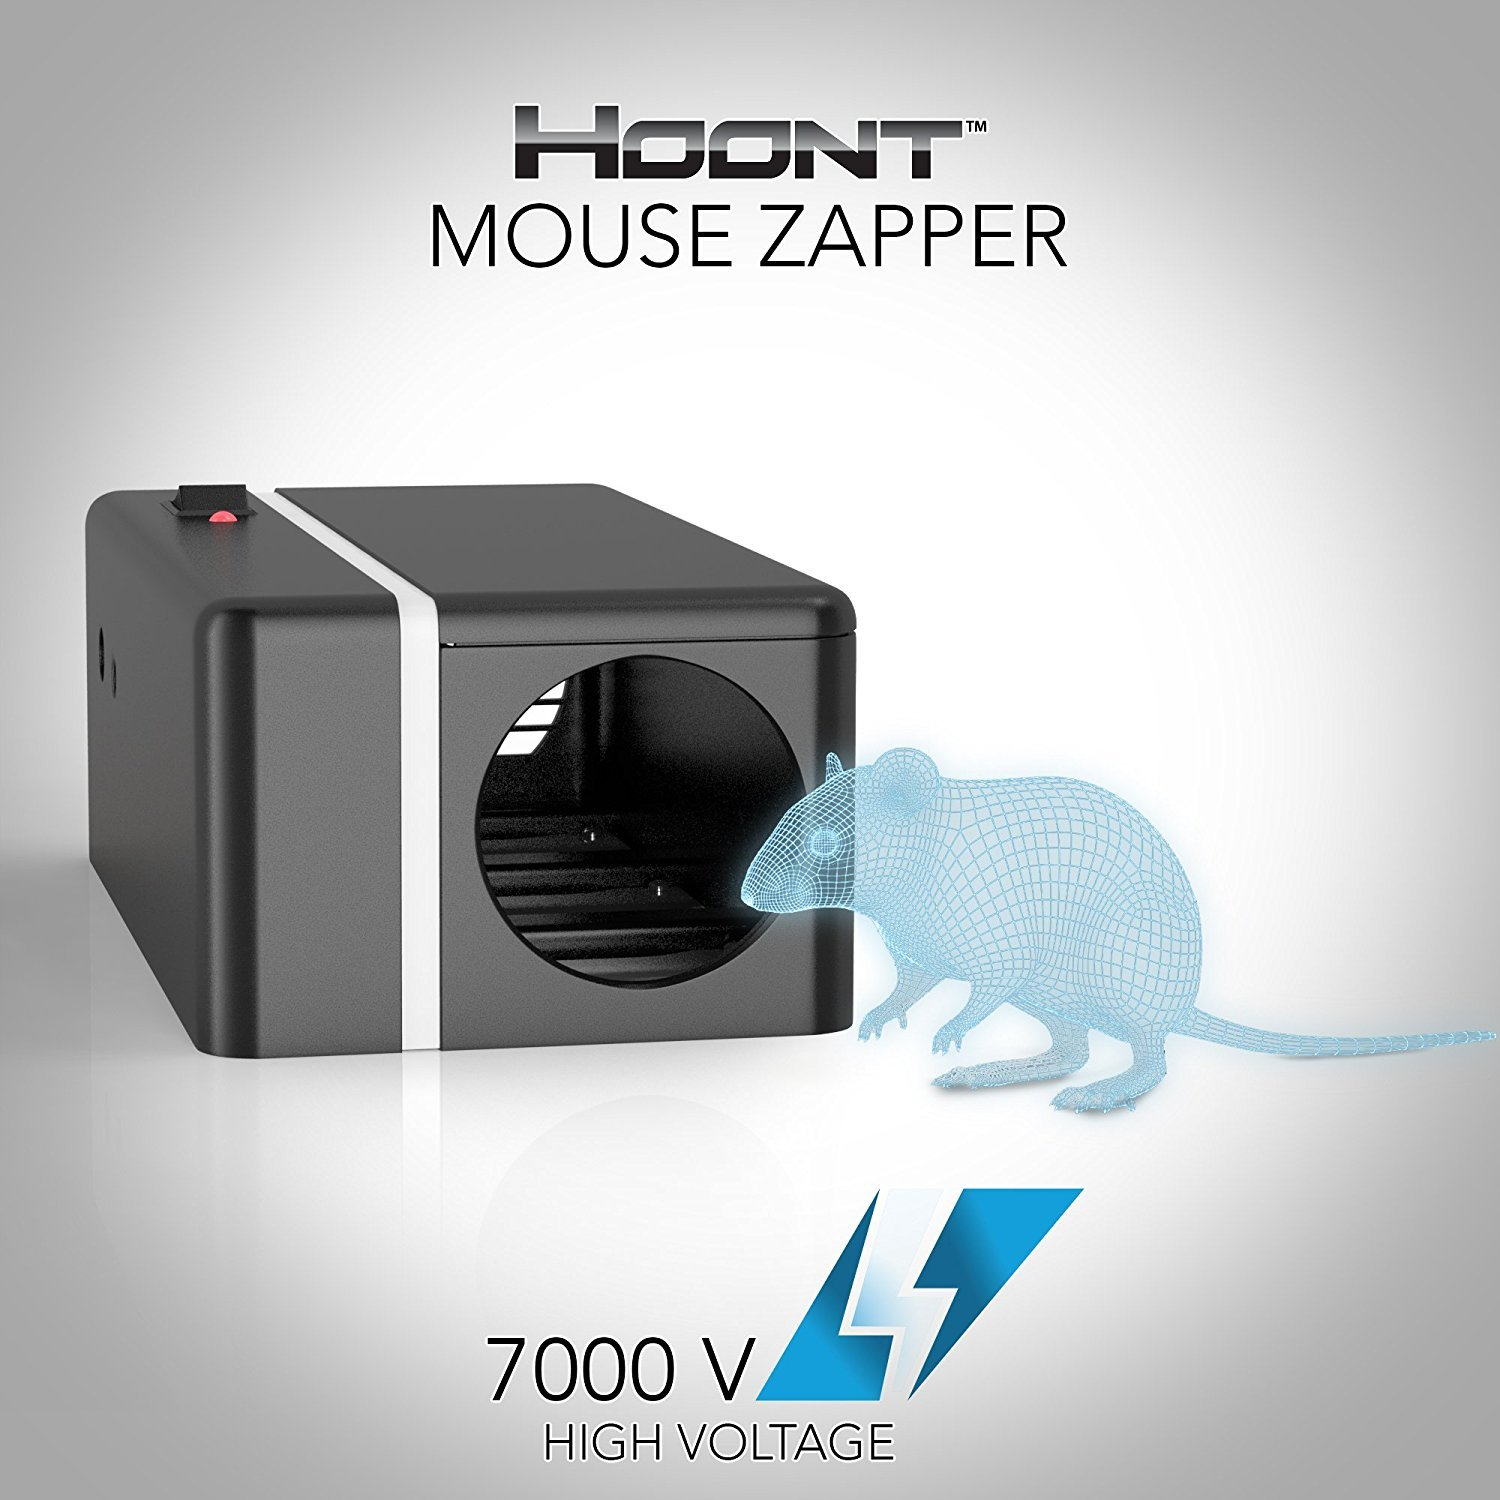 Hoont Robust Electric Mouse Trap Killer – High Voltage Mouse Zapper - Clean, Easy and Humane Extermination of Mice [UPGRADED VERSION]